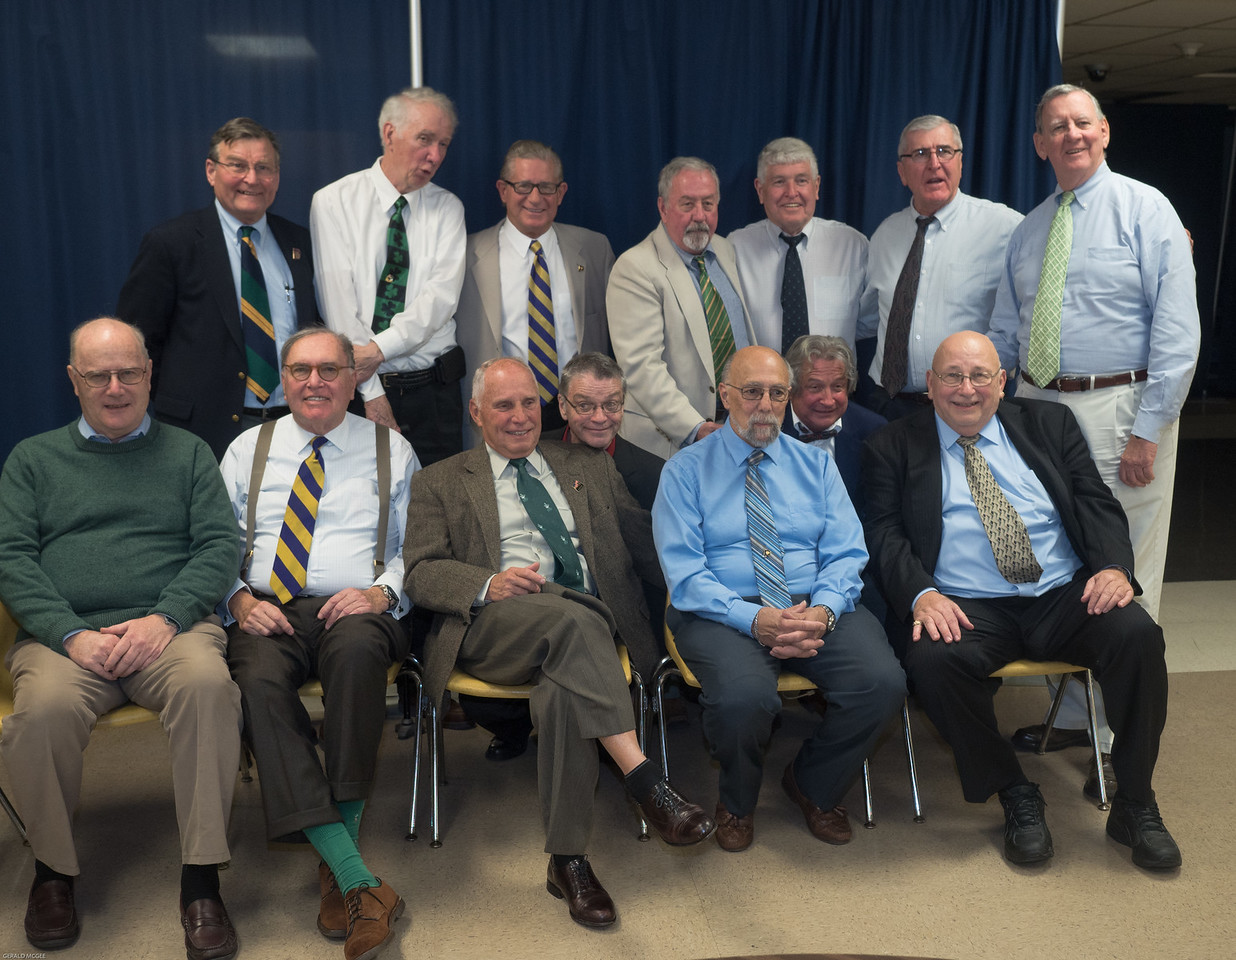 Top: Gerry Gay, John Minton, Mike Lynch, Ed O'Keefe, Tom Murray, Rich Deneen, Jim Collins Bottom: Gerry McGee, Fred Russell, Peter Kerwin, John Early, Al Caldiero, Bob Dill, Joe Kurtz